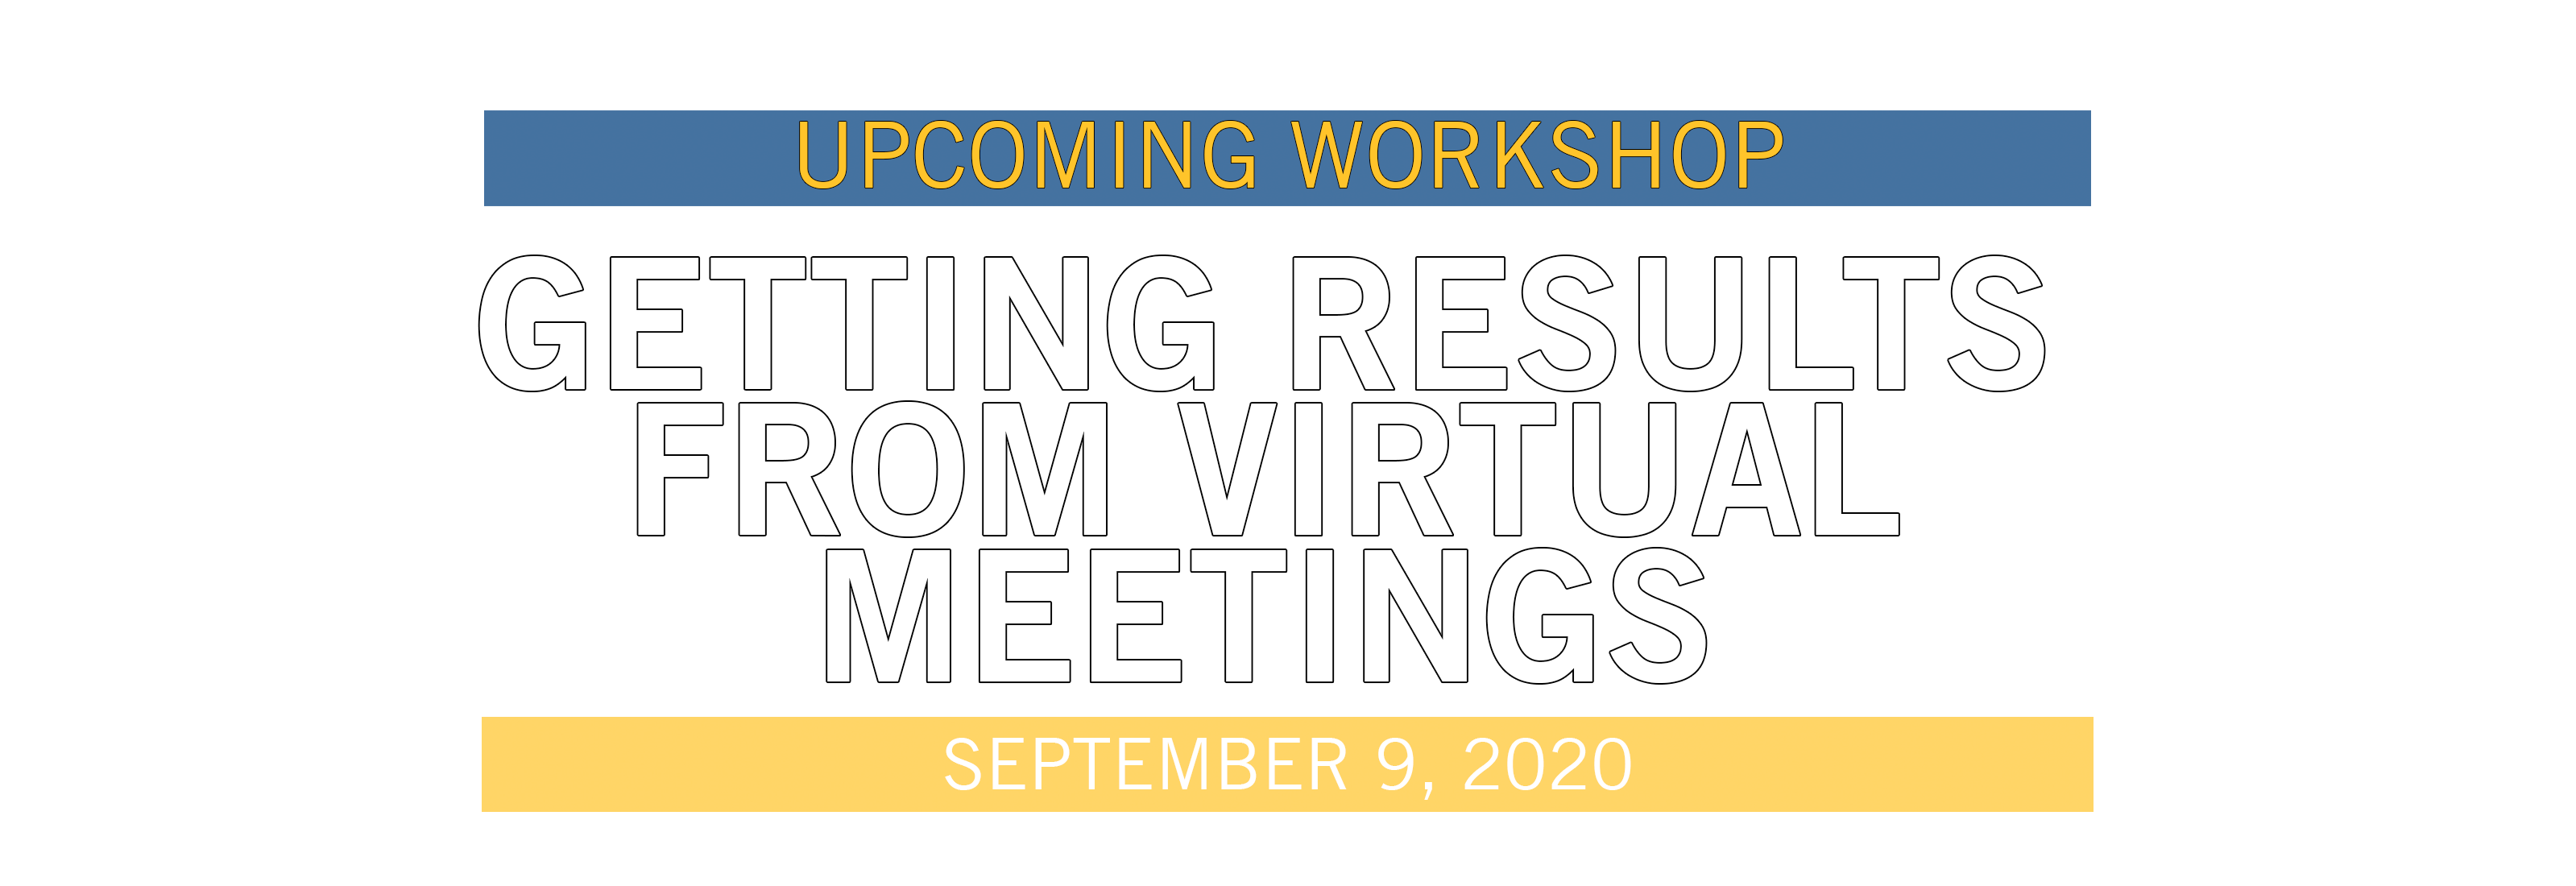 Getting Results From Virtual Meetings